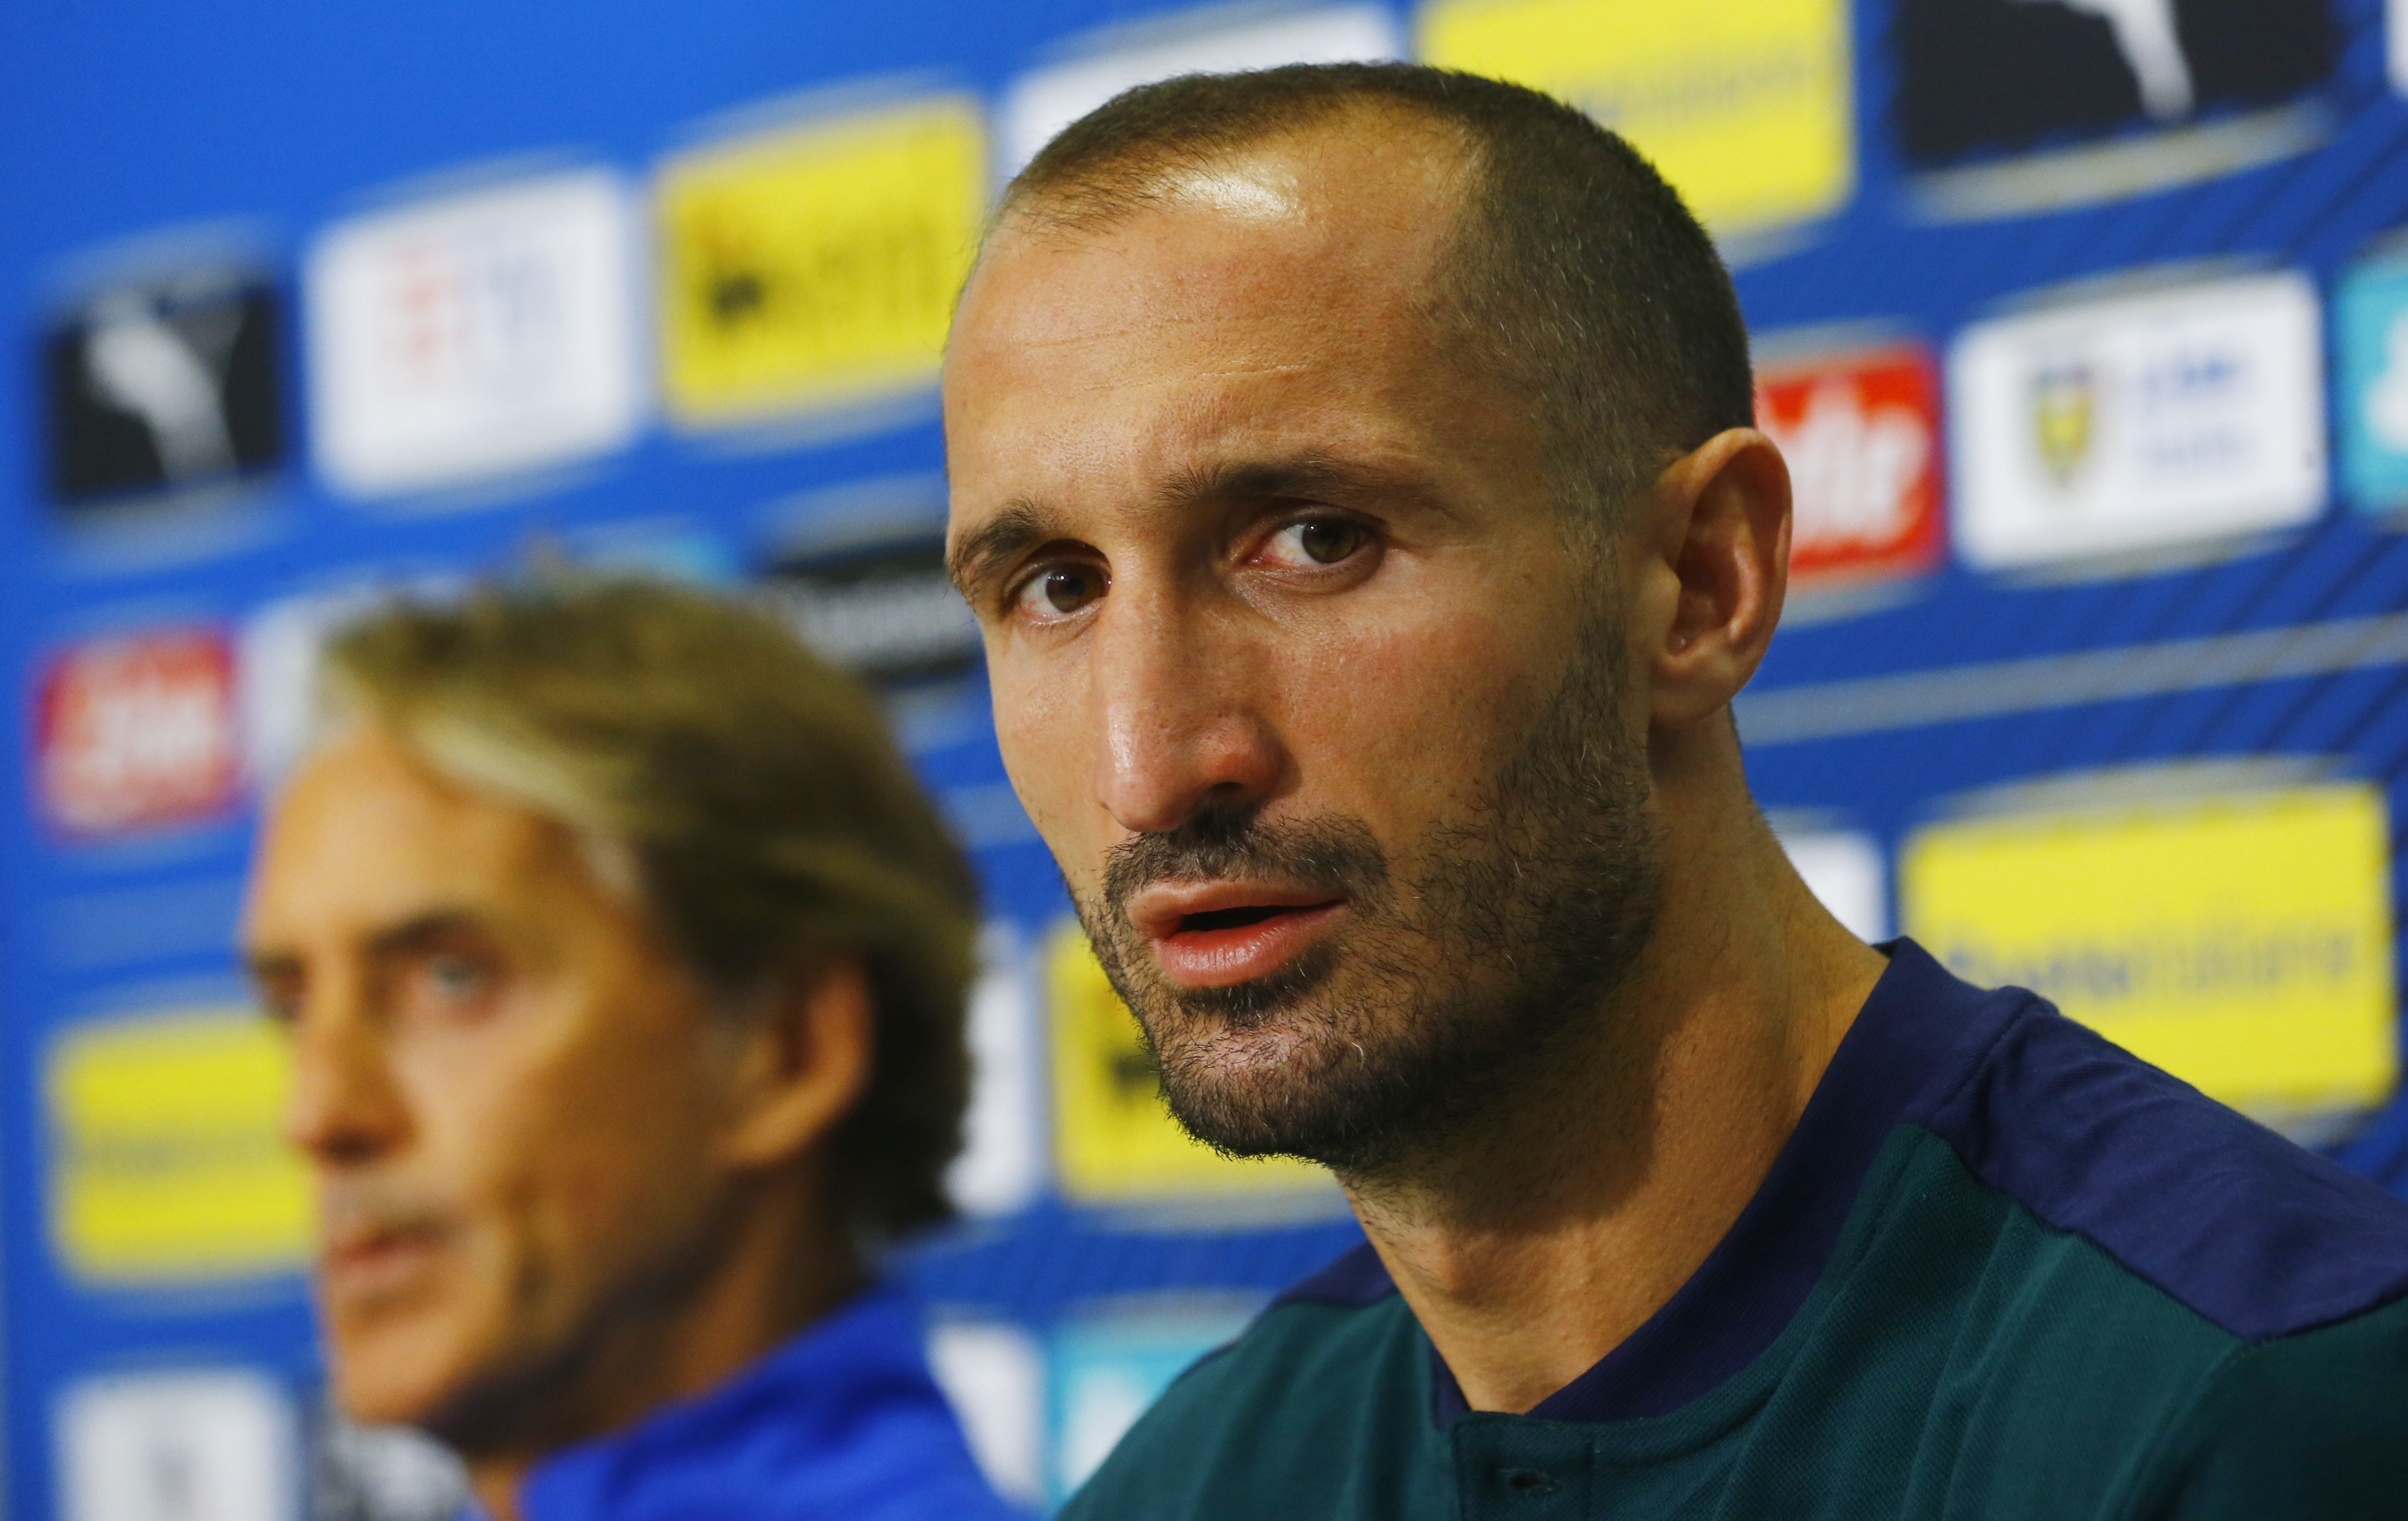 Soccer Football - World Cup - UEFA Qualifiers - Italy Press Conference - St. Jakob-Park, Basel, Switzerland - September 4, 2021  Italy's Giorgio Chiellini during the press conference REUTERS/Arnd Wiegmann